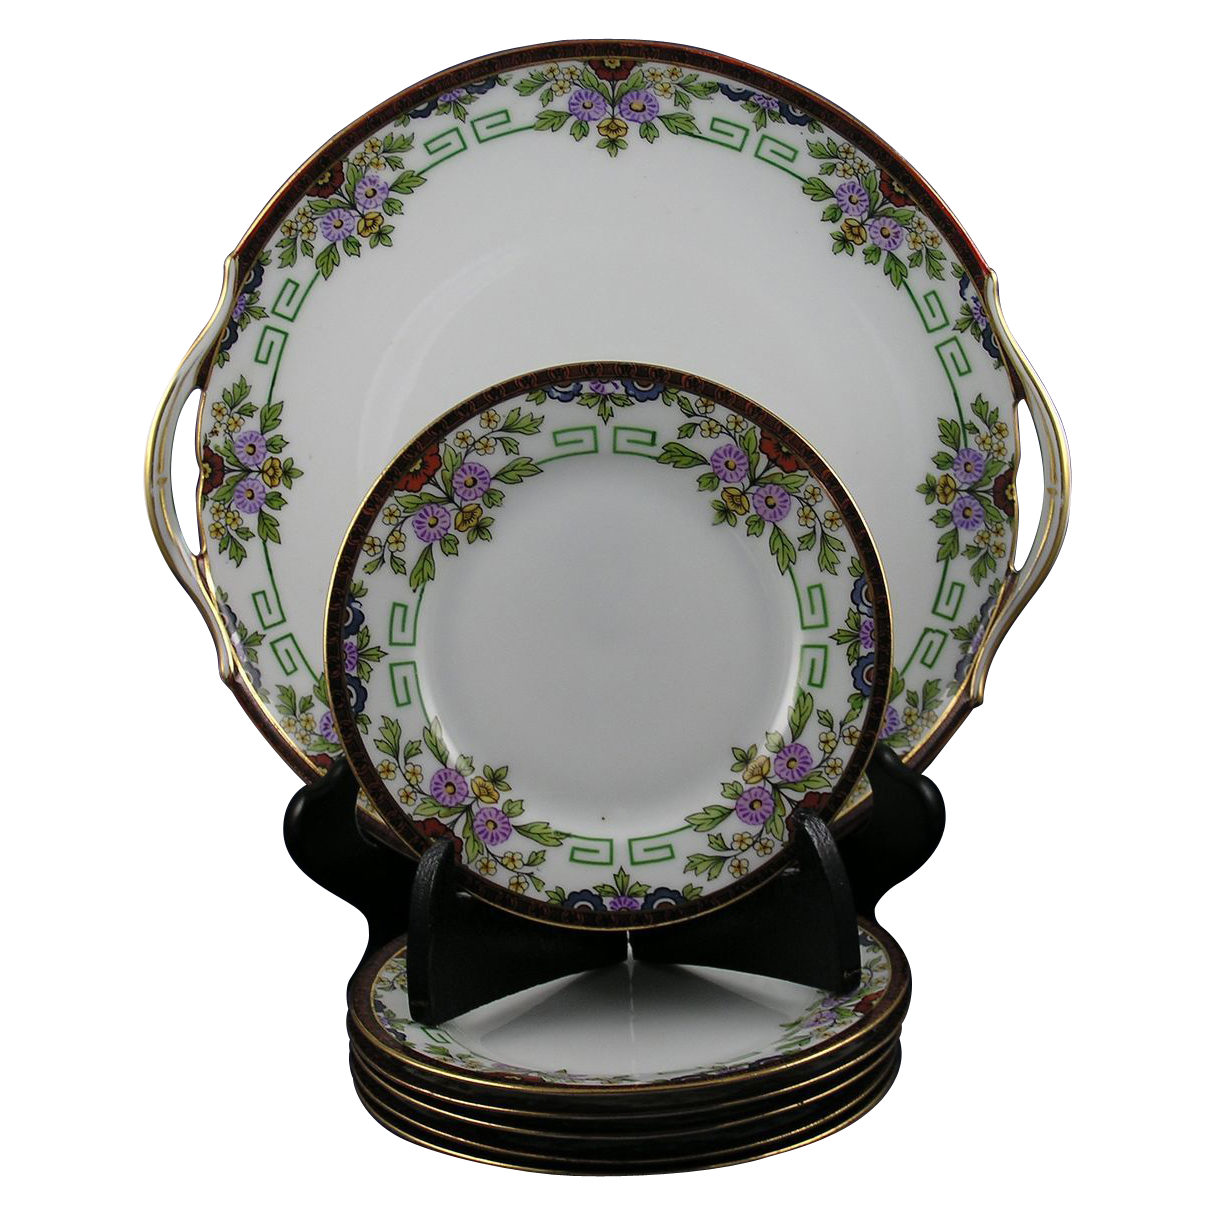 PH Leonard Austria/Imperial Crown Austria 7-Piece Dessert Plate Set (c.1890-1908)